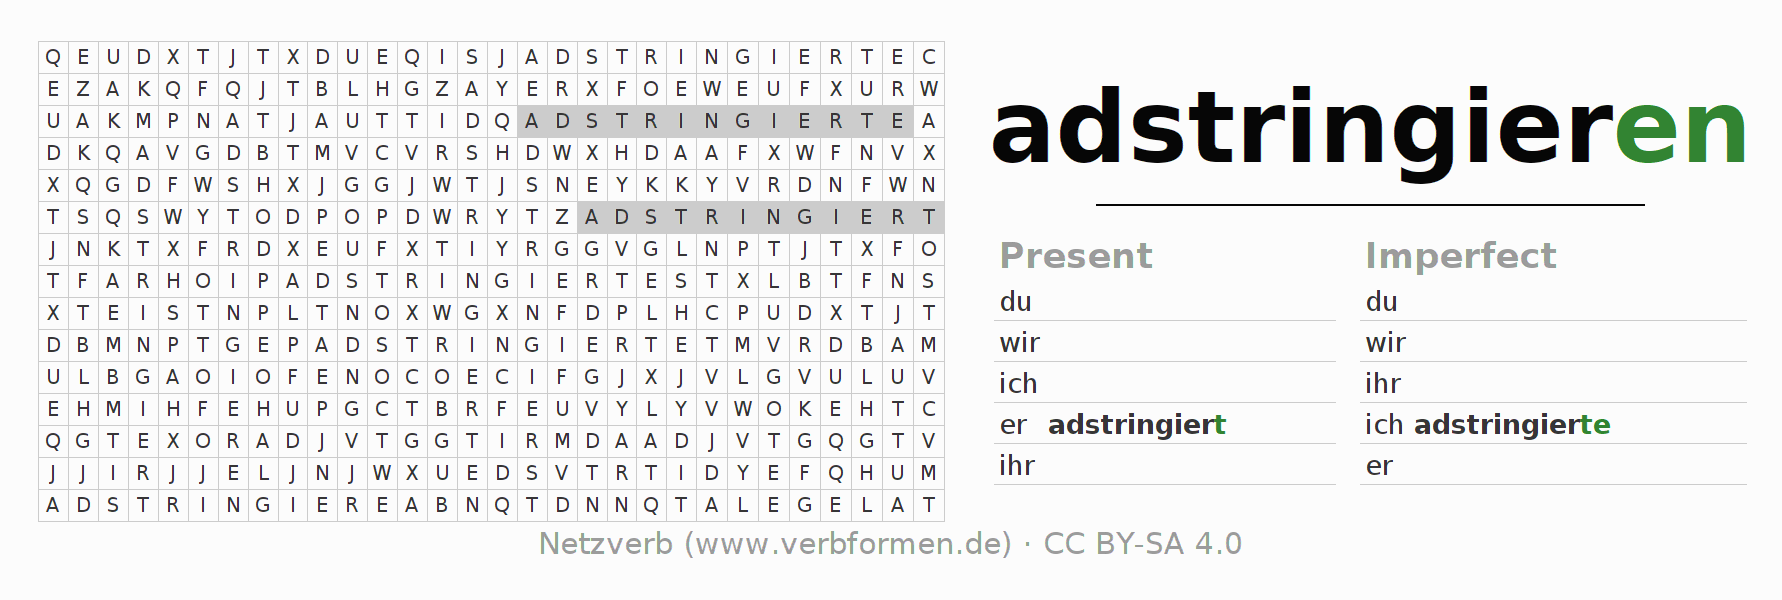 Word search puzzle for the conjugation of the verb adstringieren